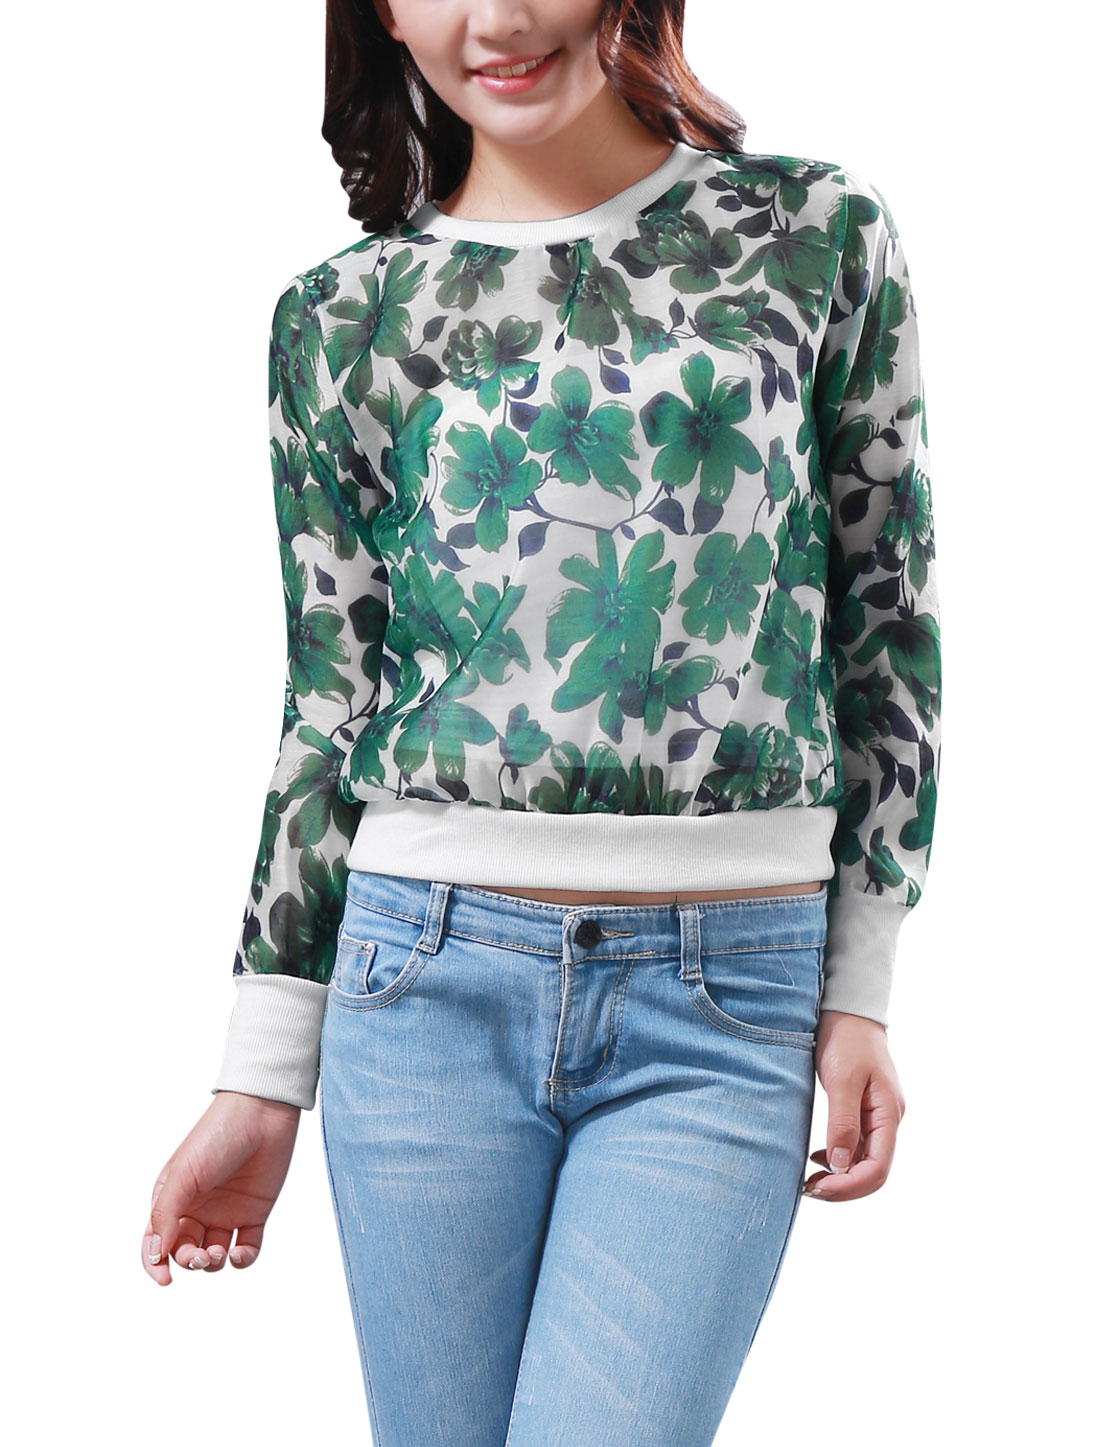 Lady Ribbed Trim Allover Floral Print See Through Casual Sweatshirt White Green XS